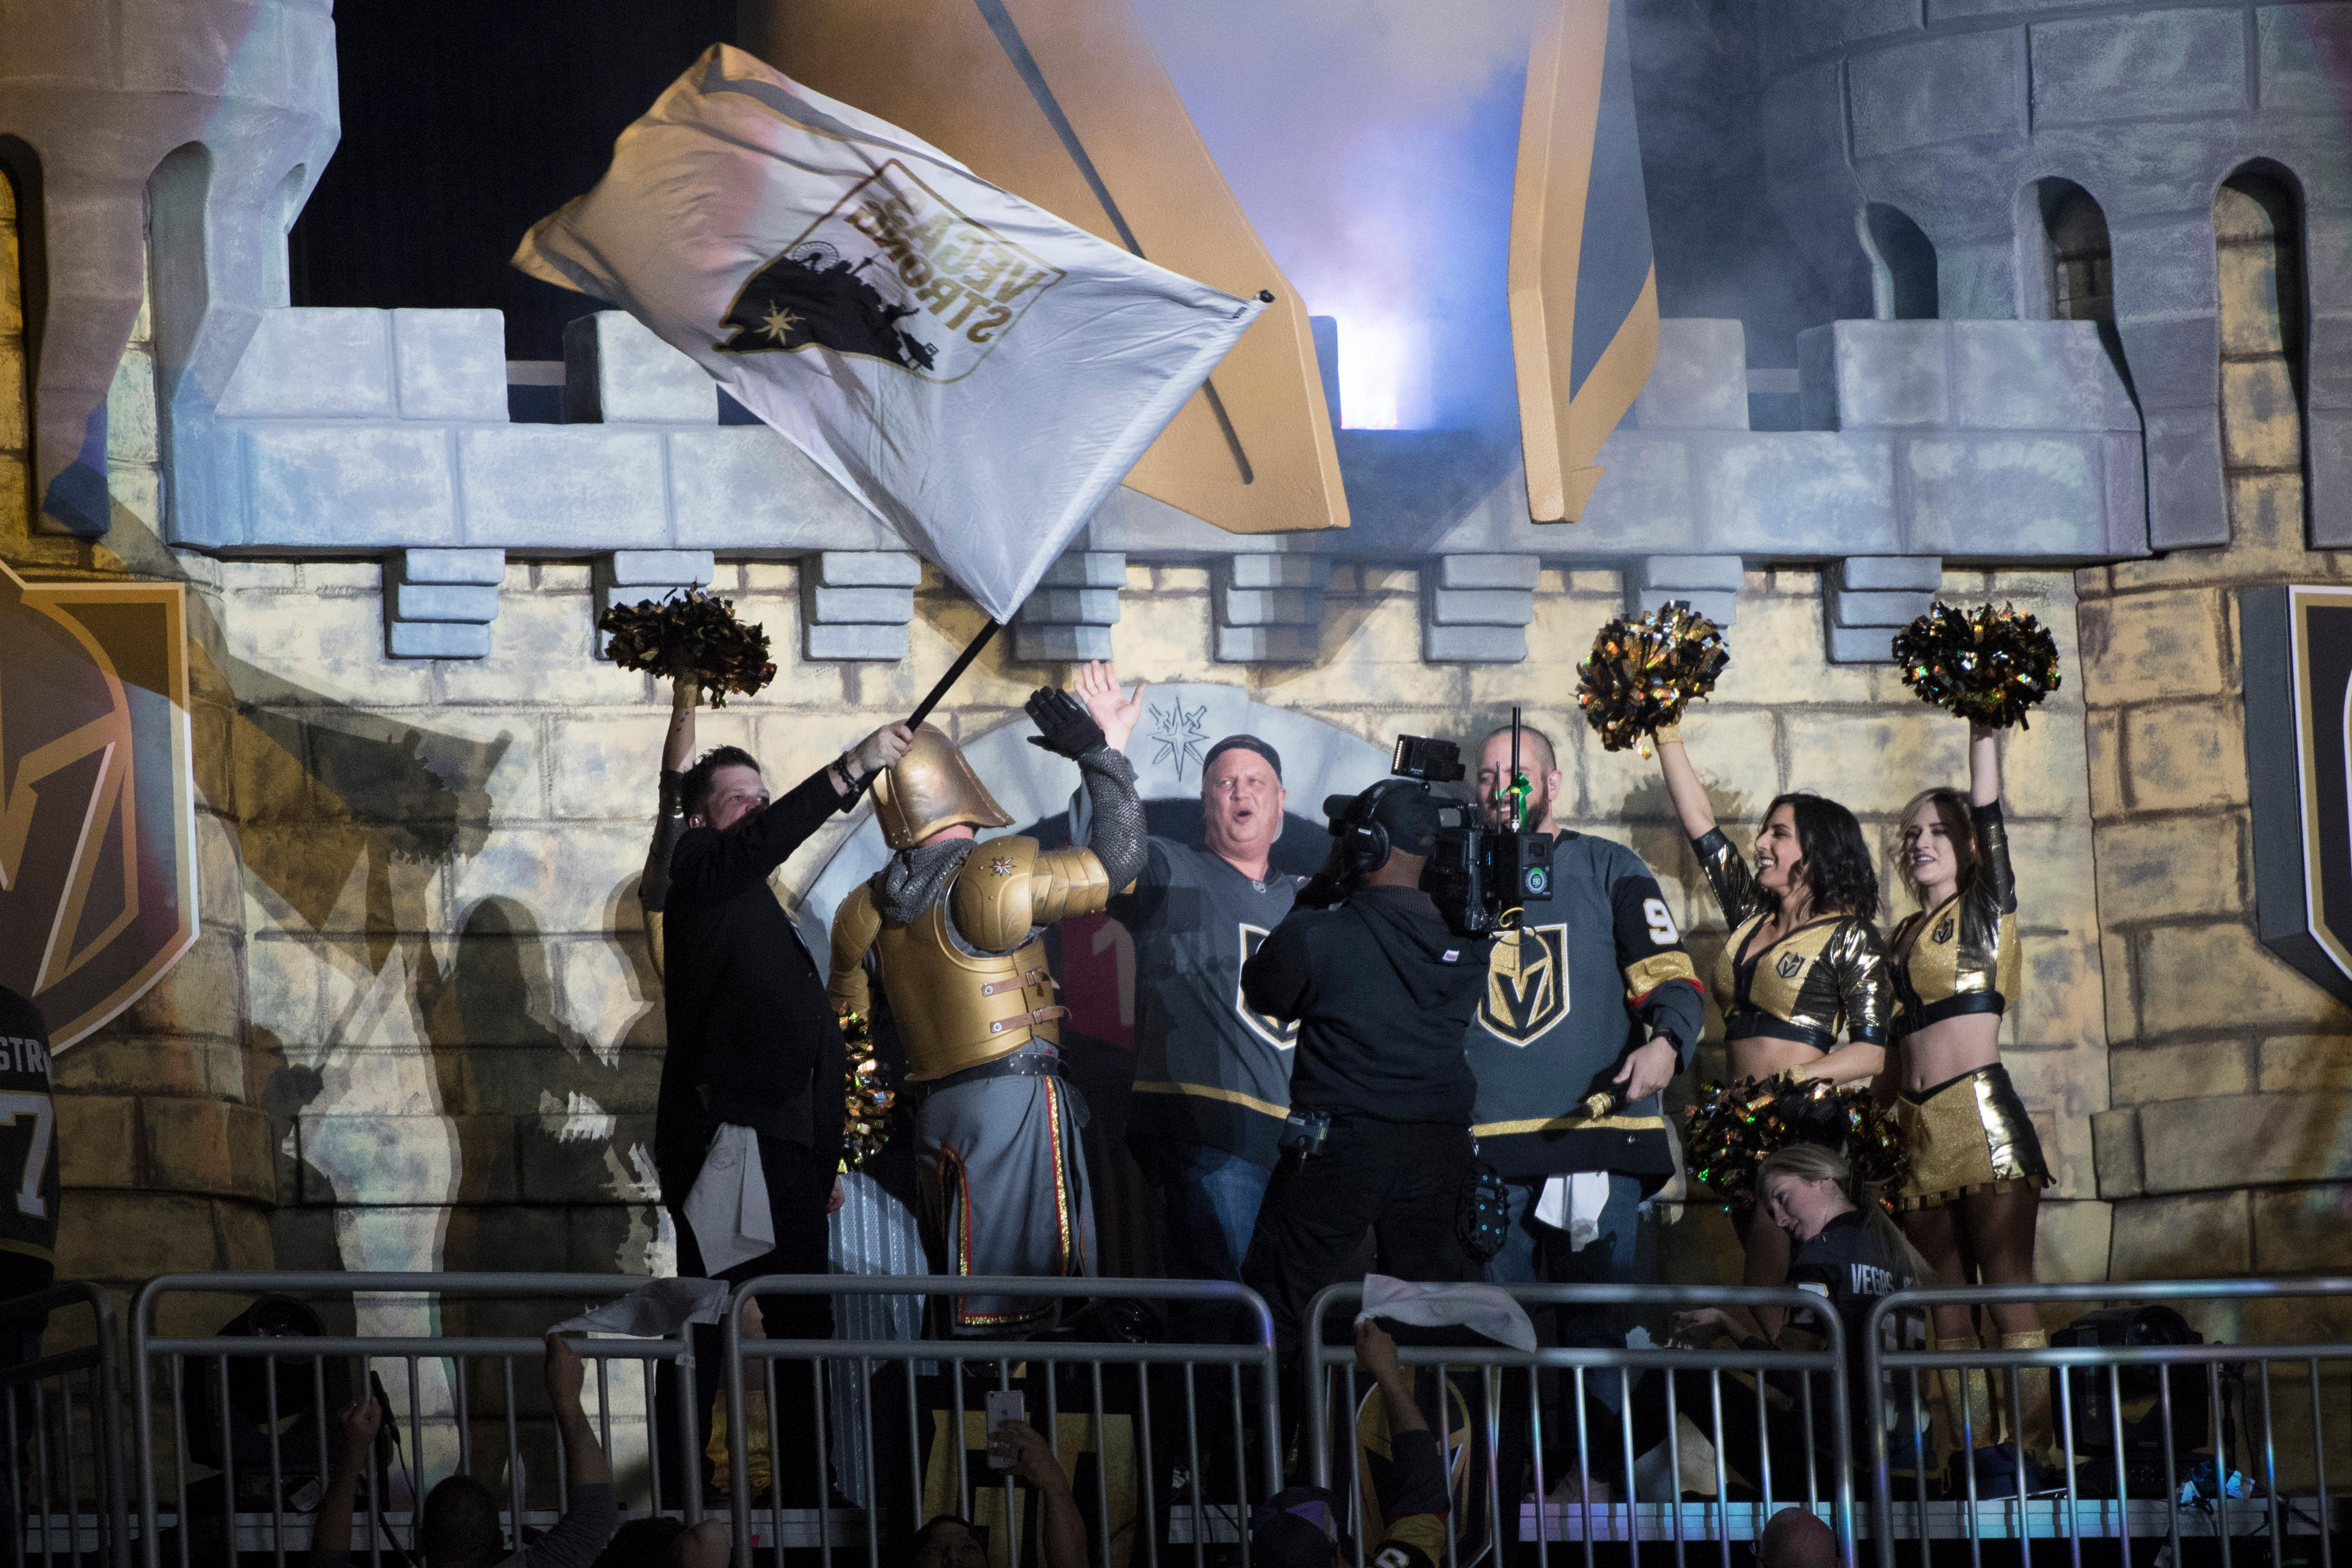 The D Las Vegas co-owner Derek Stevens gets a high five after sounding an air raid siren to start the second period of Game 1 of the NHL hockey first-round playoff series between the Vegas Golden Knights and Los Angeles Kings Wednesday, April 11, 2018 at T-Mobile Arena. The Knights won 1-0. CREDIT: Sam Morris/Las Vegas News Bureau